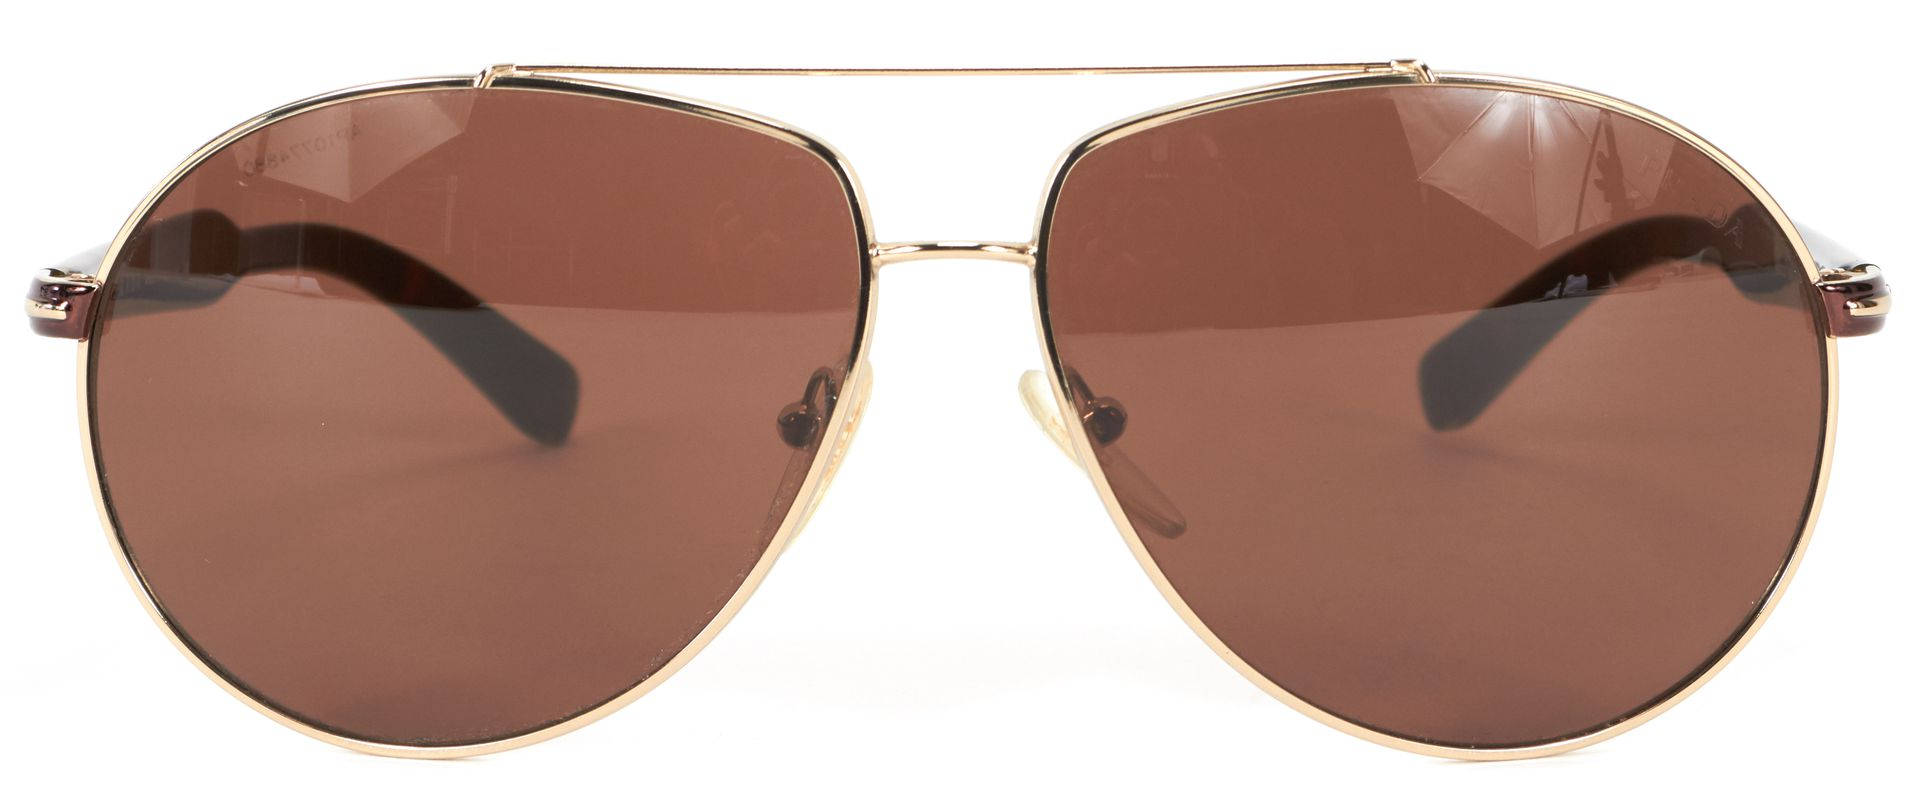 oversized aviator sunglasses  Prada Silver Brown Metallic Rim Oversized Aviator Sunglasses ...